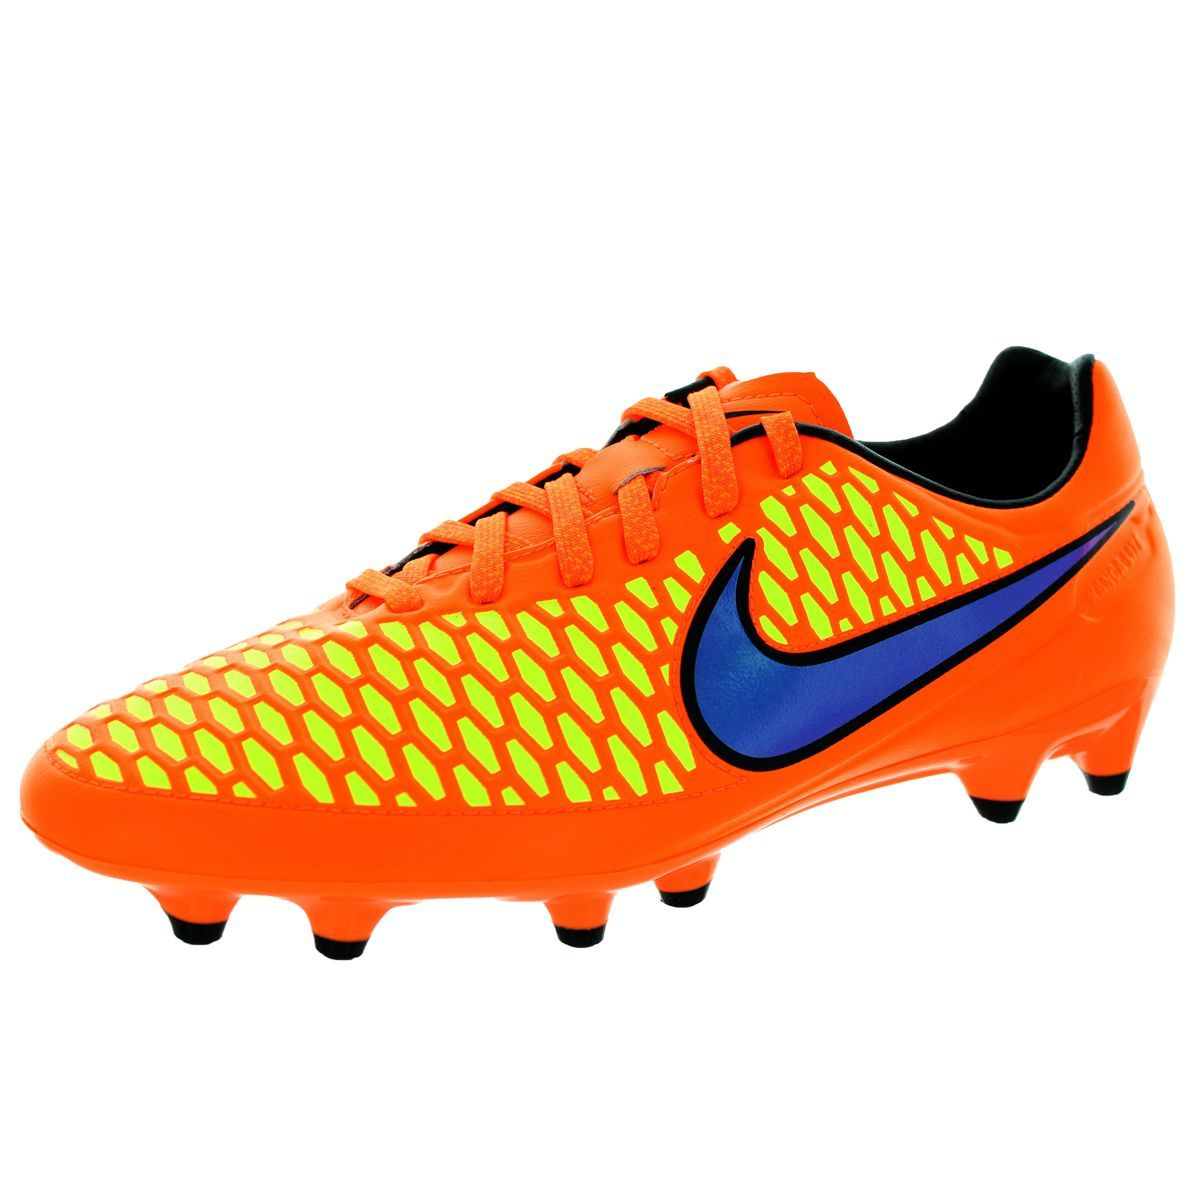 low priced 8c0a2 20ea8 ... reduced nike mens magista orden fg orange orange hyp soccer cleat by  nike 69d66 2046c